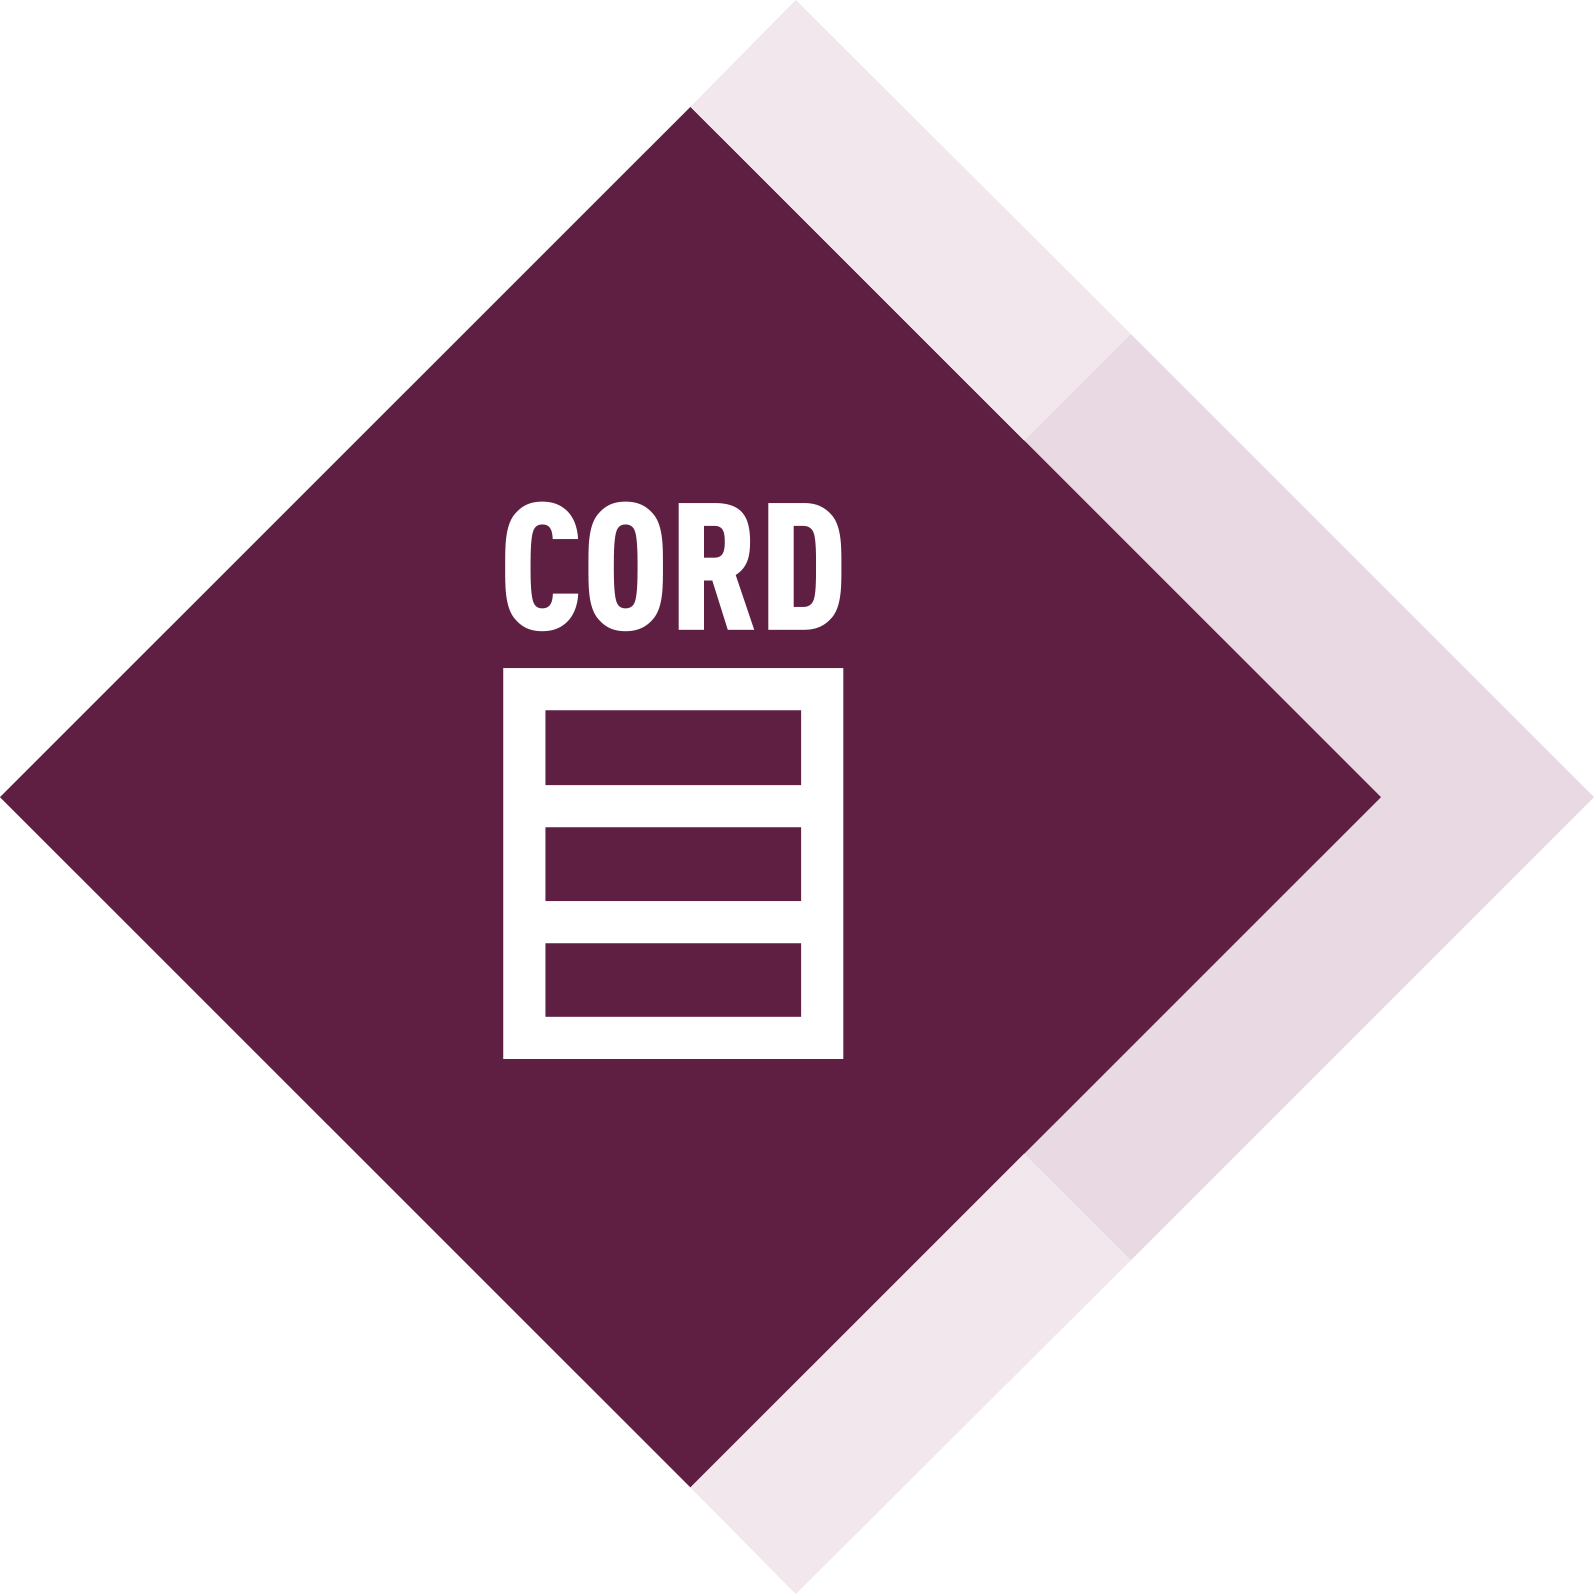 CORD Pods feature Image